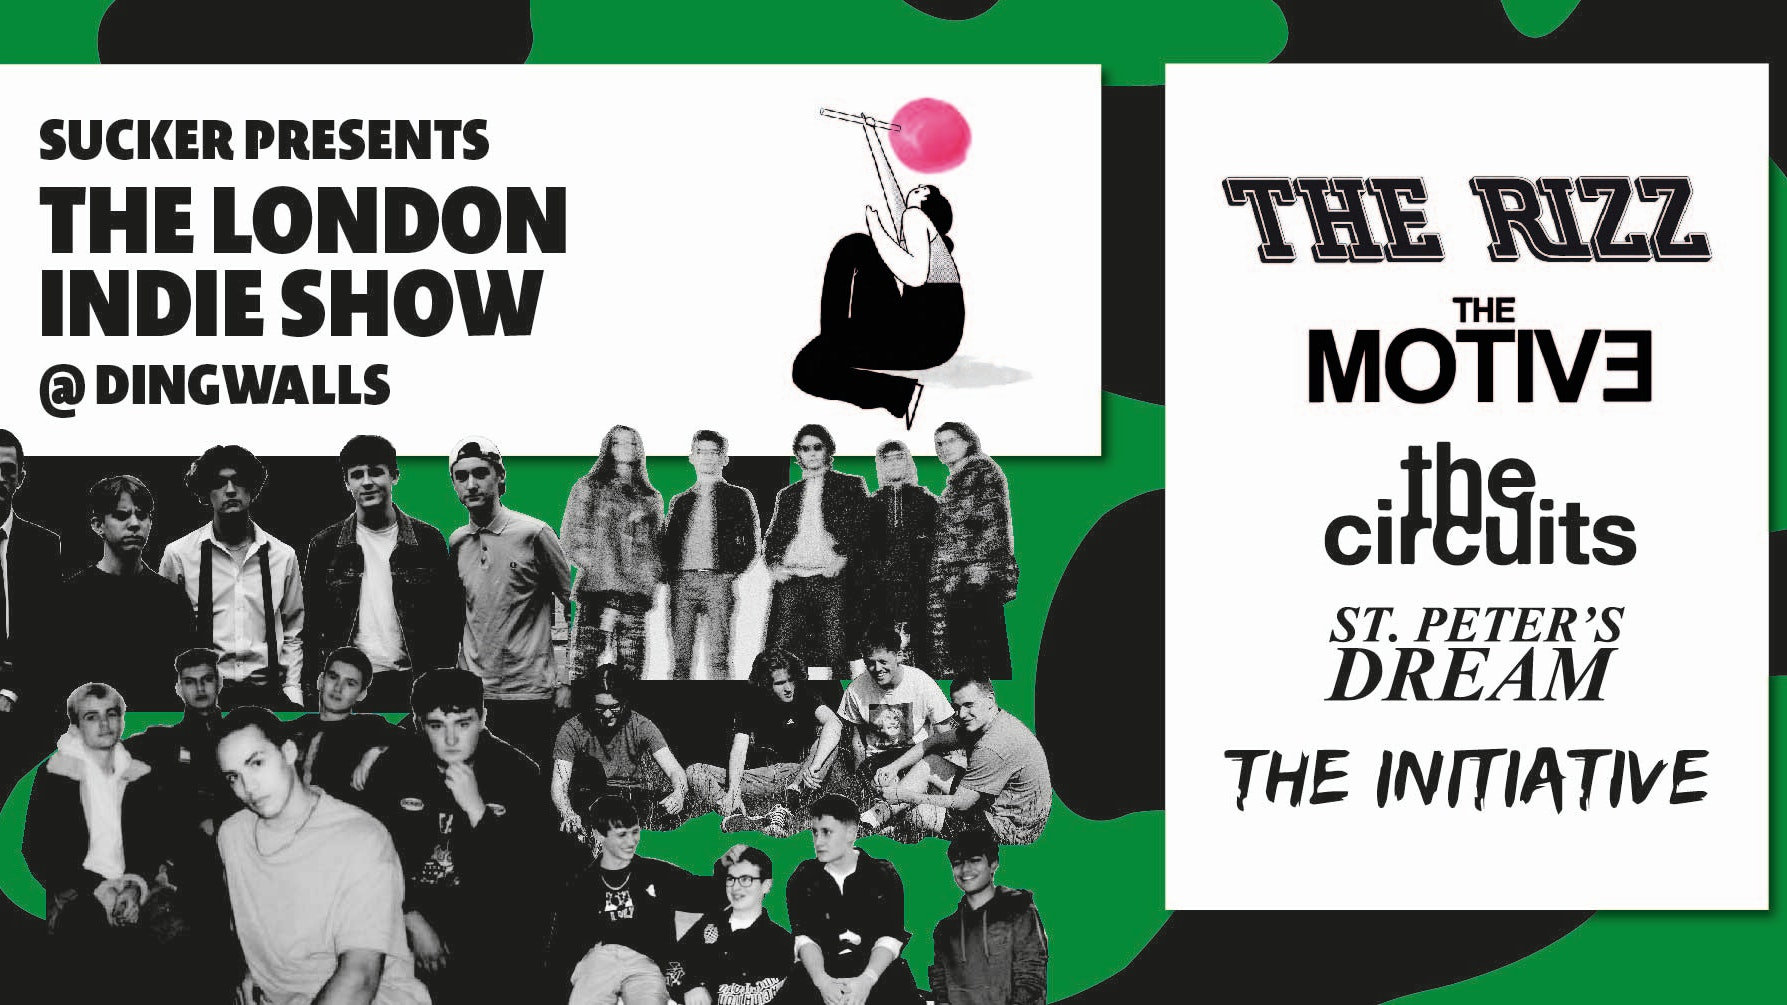 The London Indie Show at Dingwalls